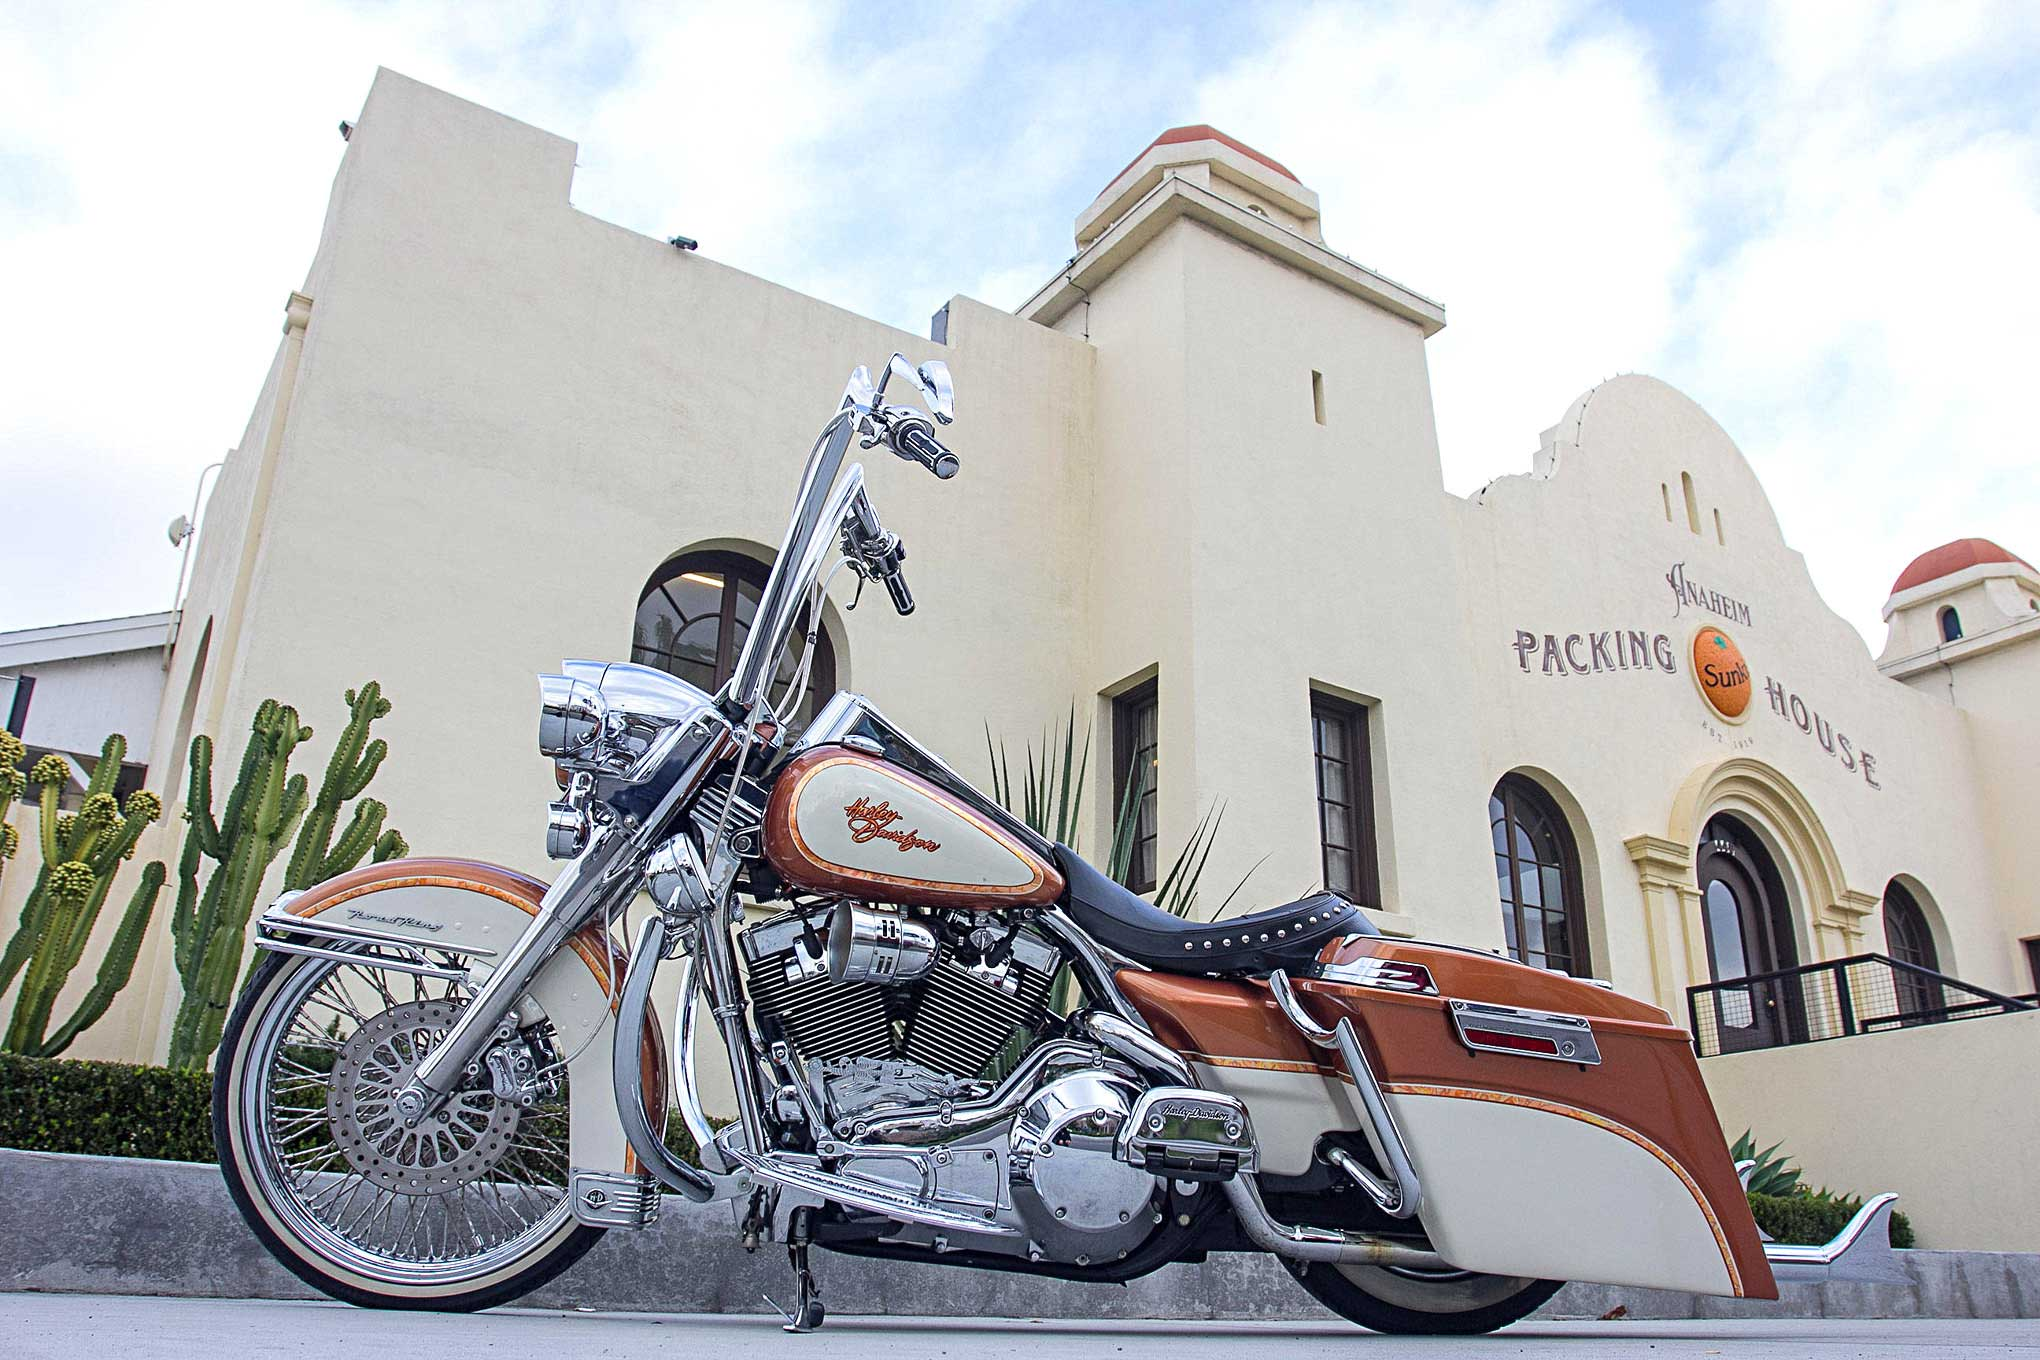 king road harley 2004 davidson custom wheel front wheels inch wire trading places profile side lowrider